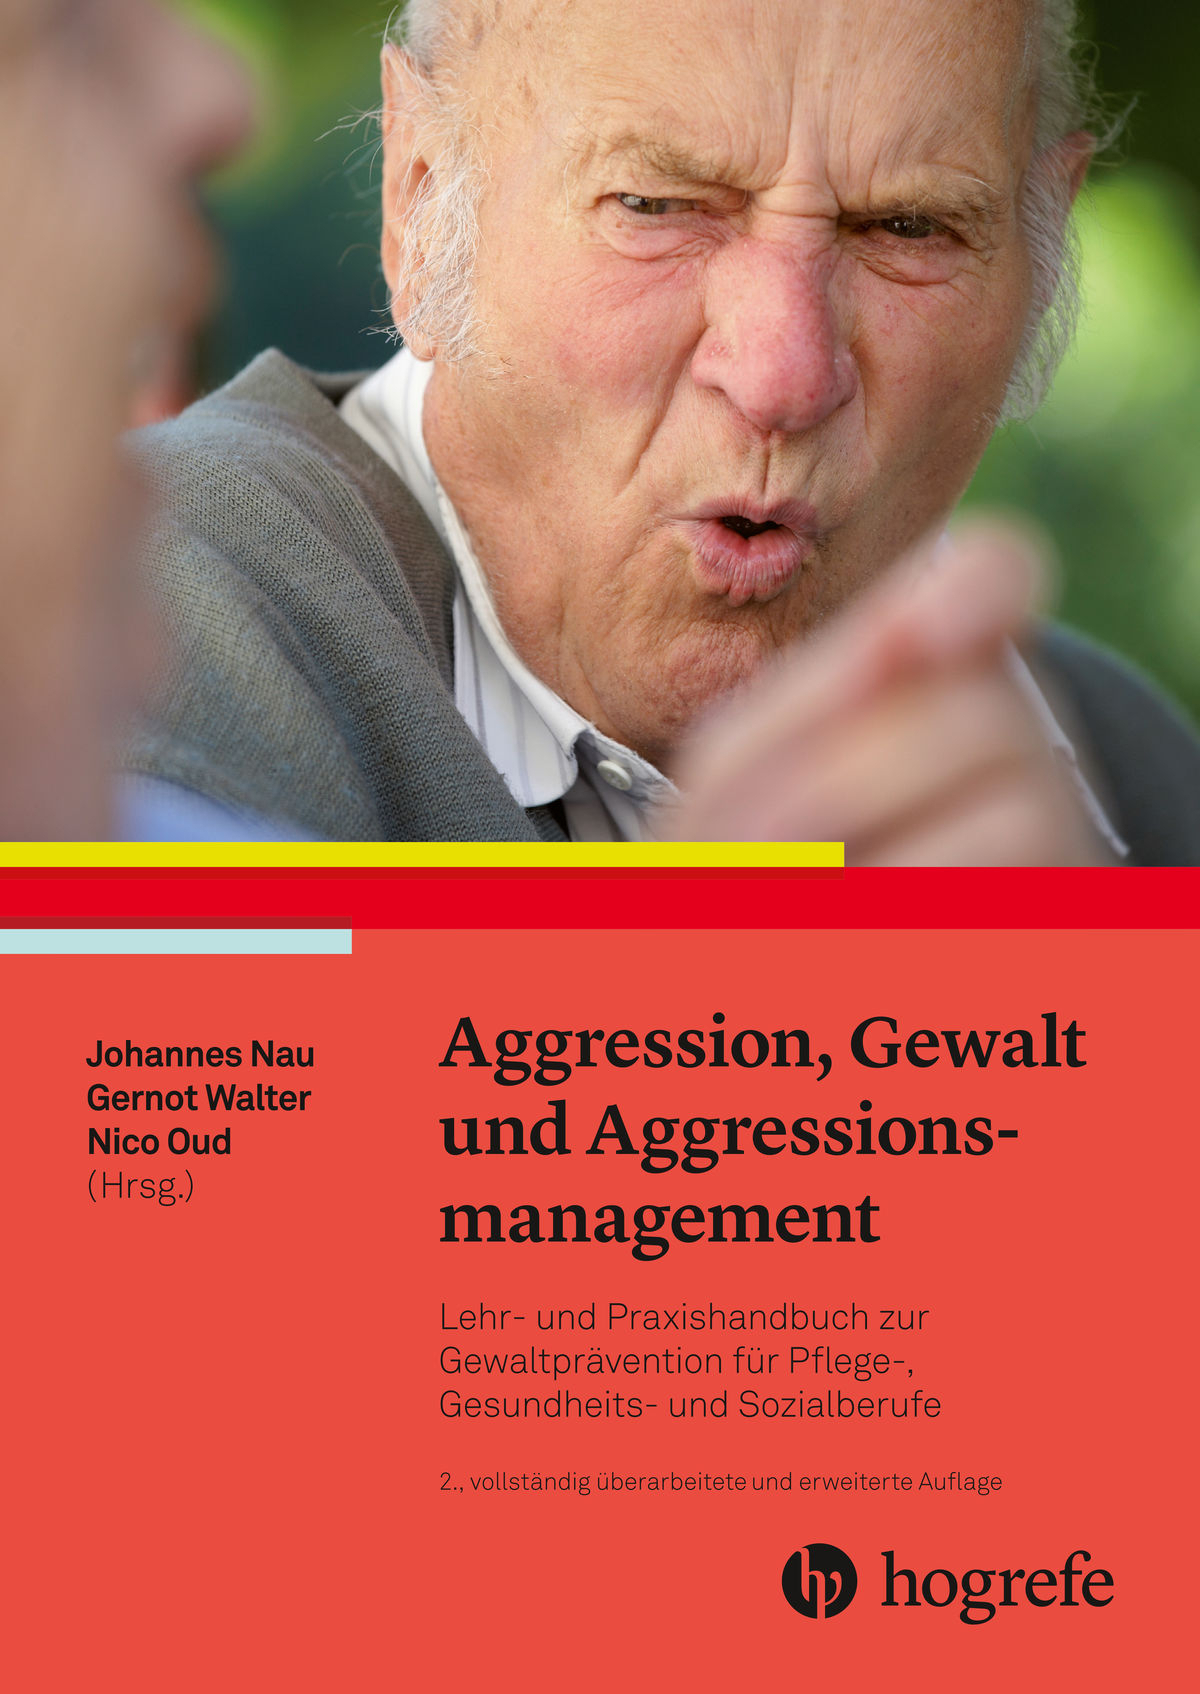 Aggression, Gewalt und Aggressionsmanagement